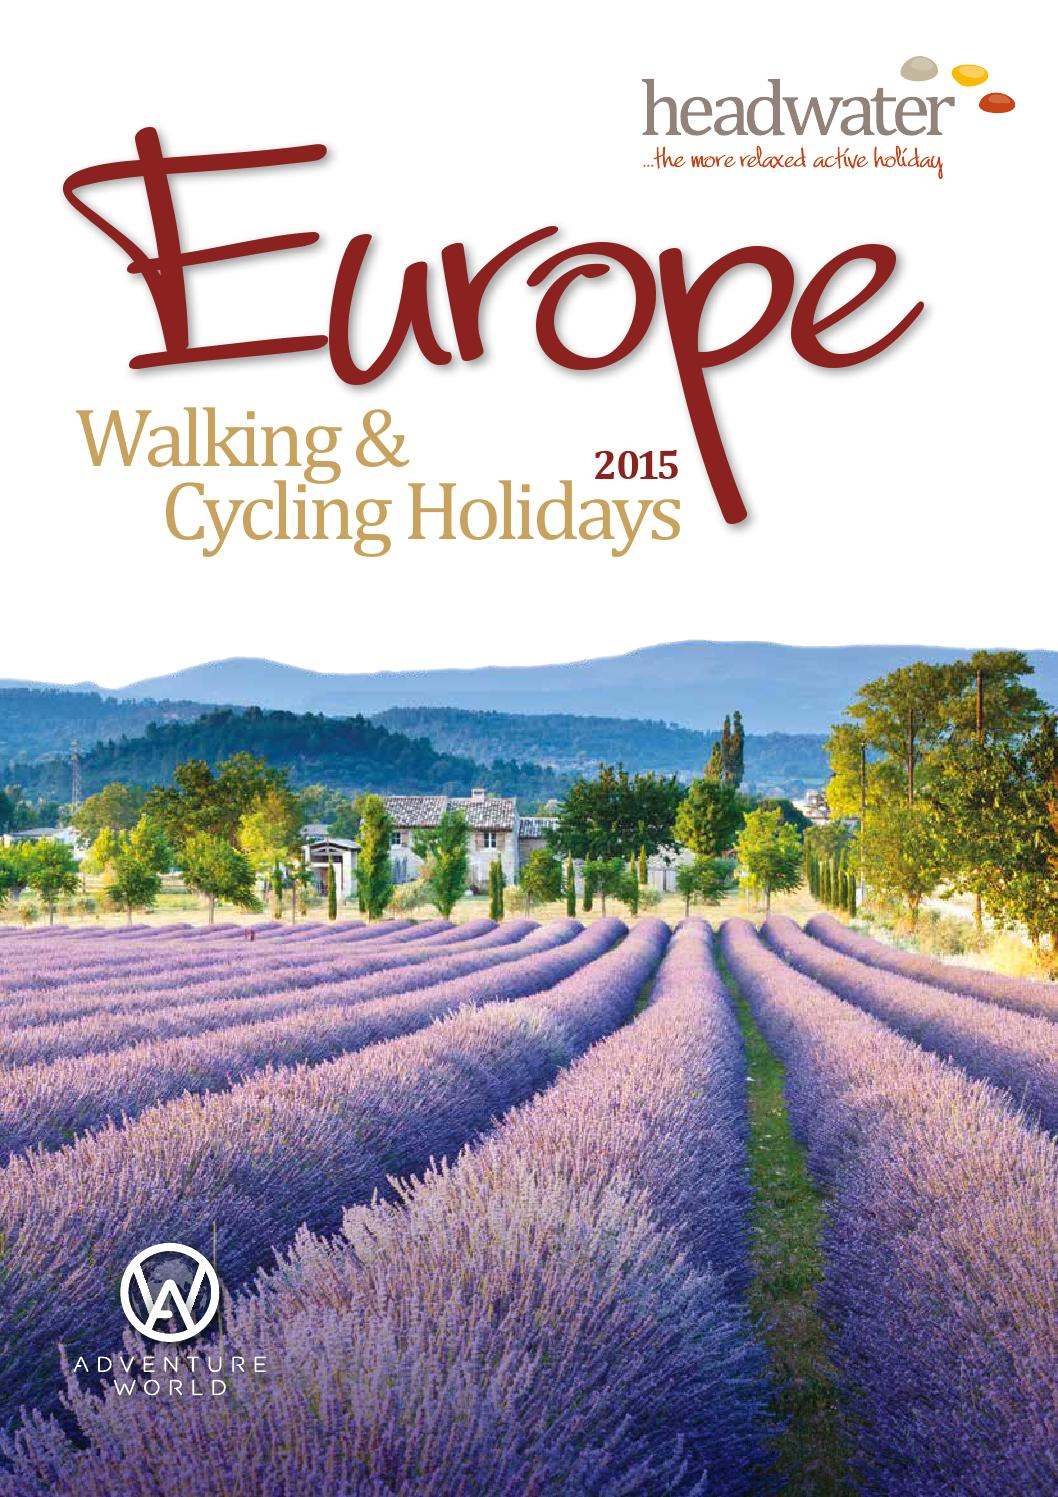 Headwater Walking & Cycling 2015